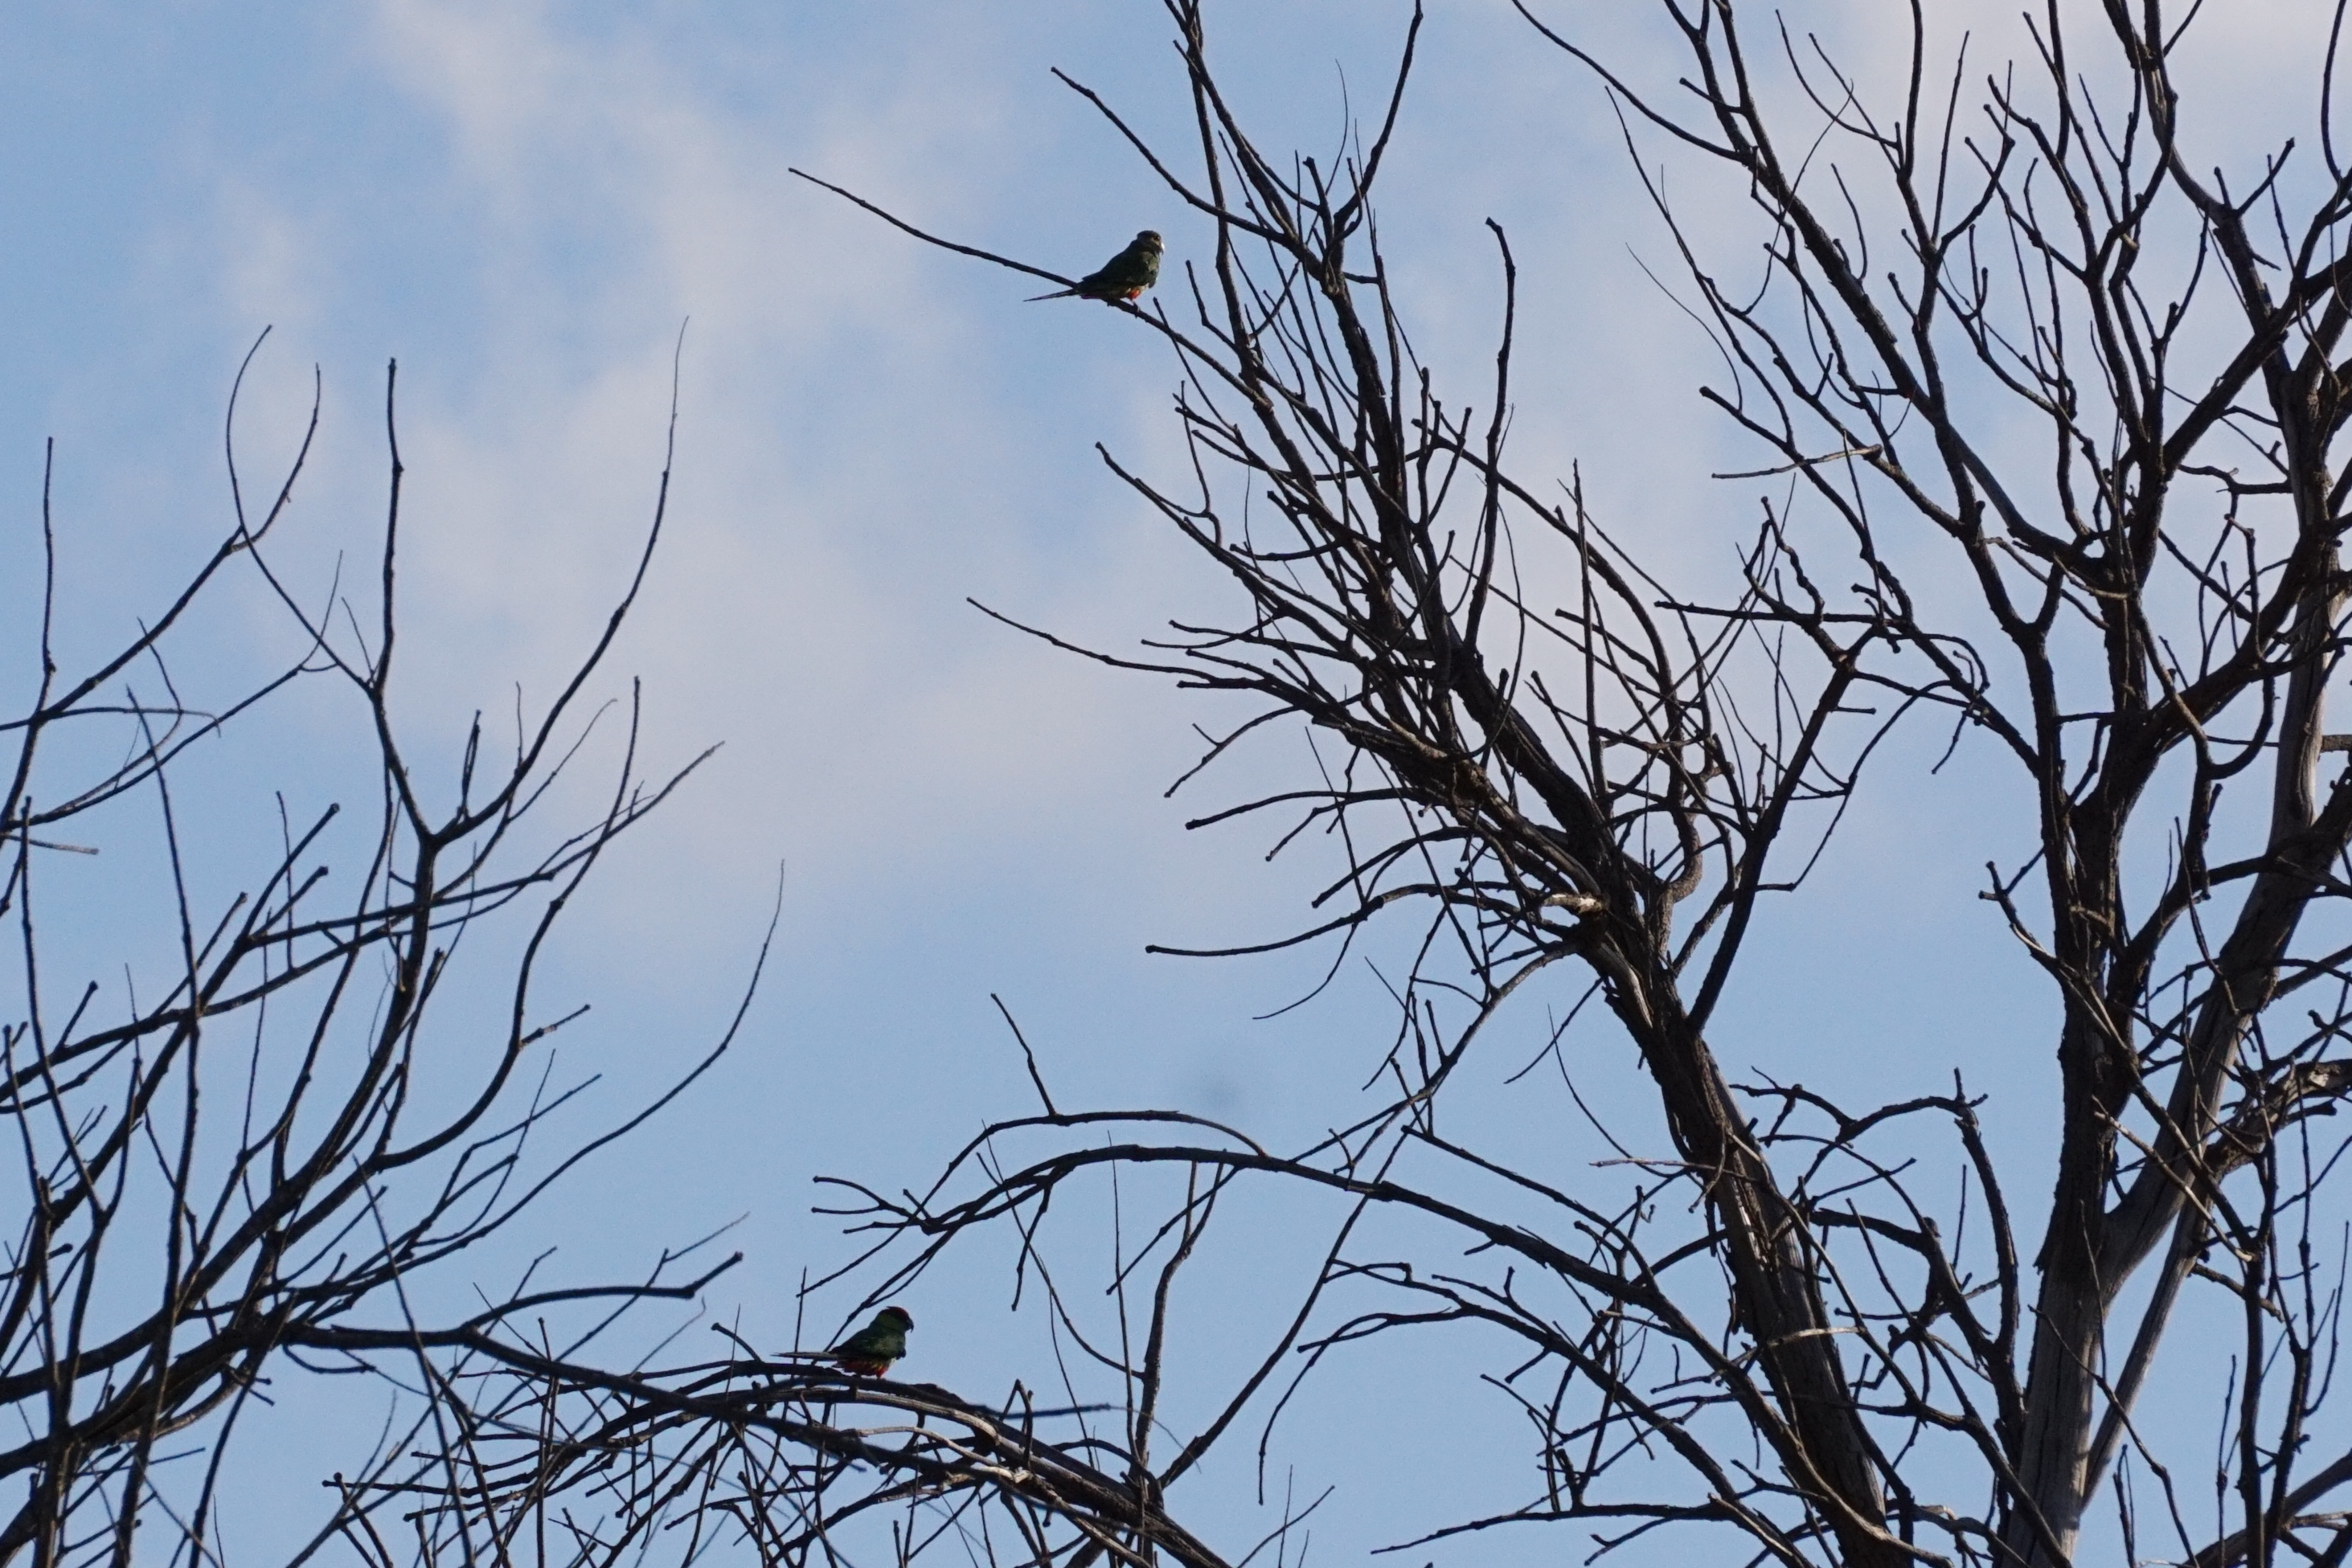 Pair of Red-capped parrots